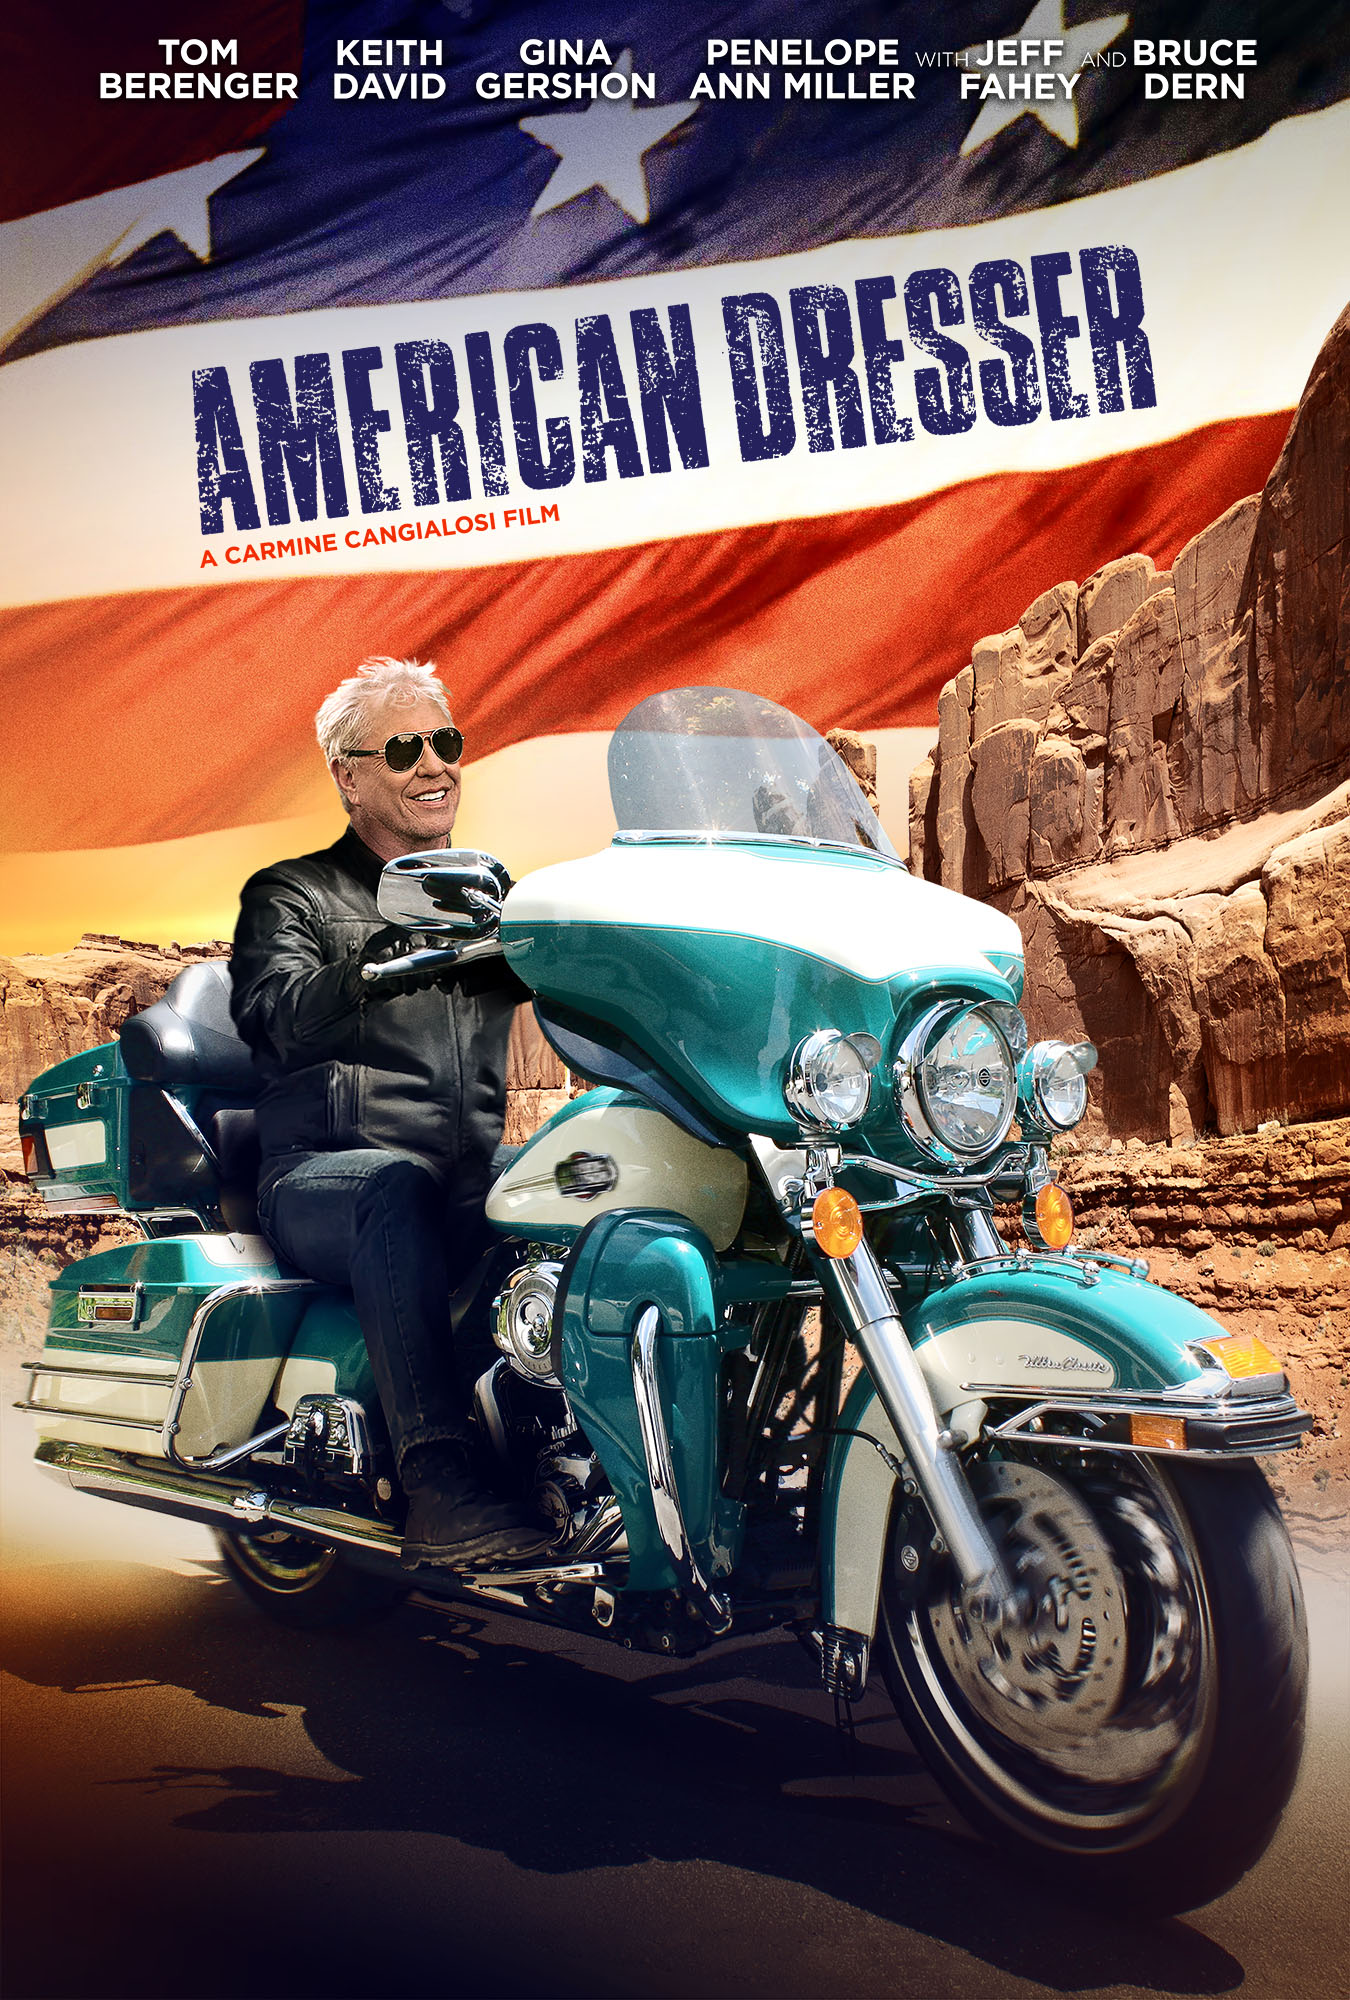 AMERICAN DRESSER Release Poster